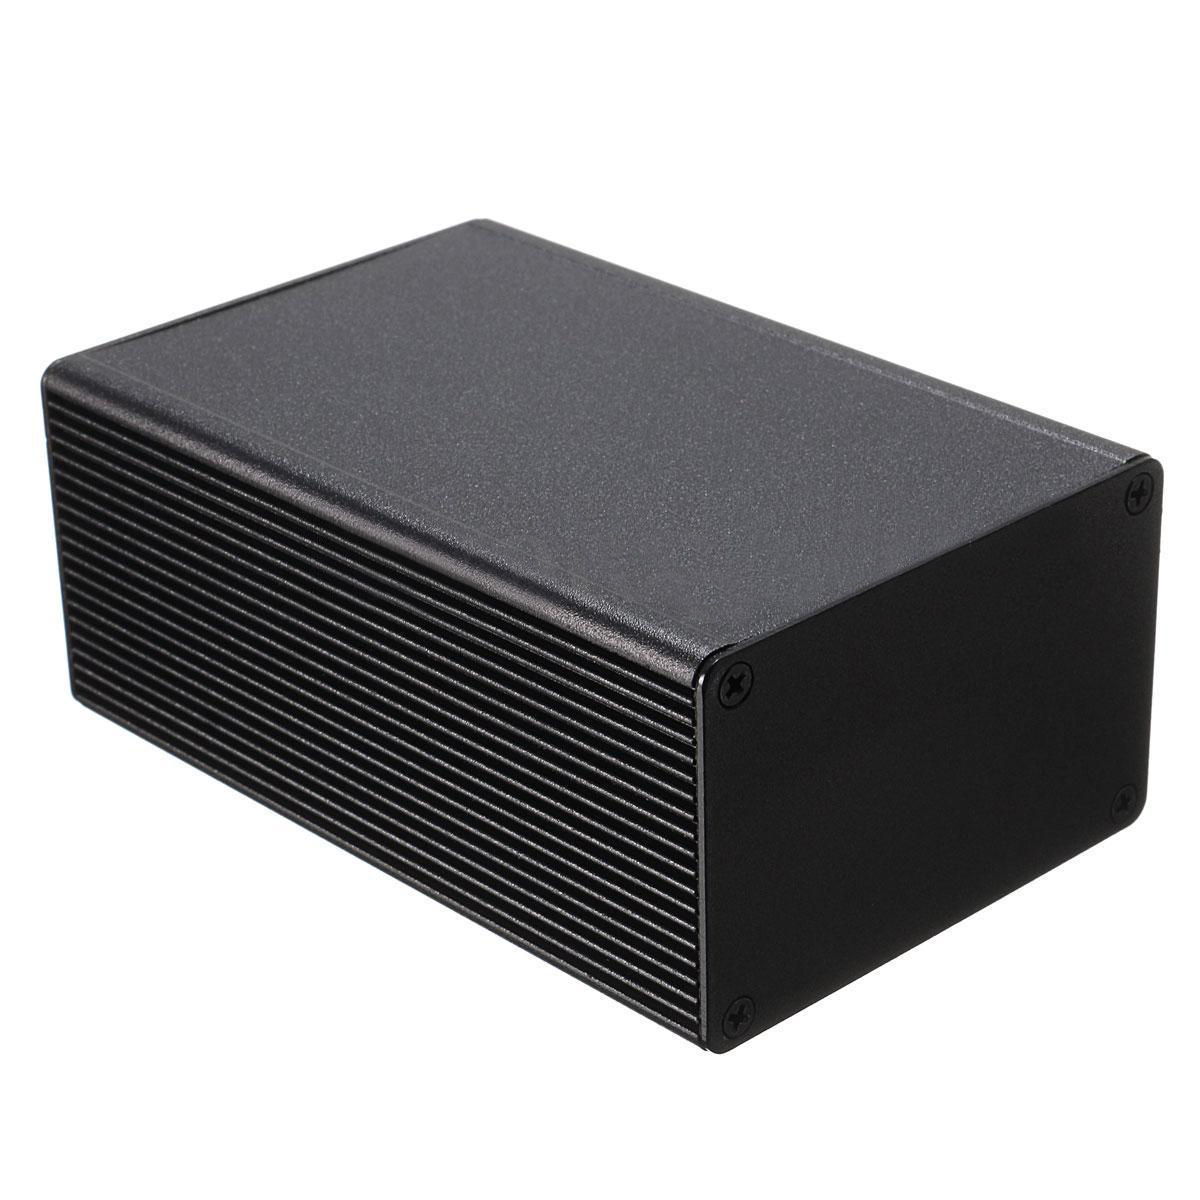 1pc Light Weigth  PCB Electronic Instrument Case Aluminum Alloy Enclosure Box 100x66x43mm Black 1pc electronic project instrument box black aluminum enclosure case 100x66x43mm mayitr with corrosion resistance